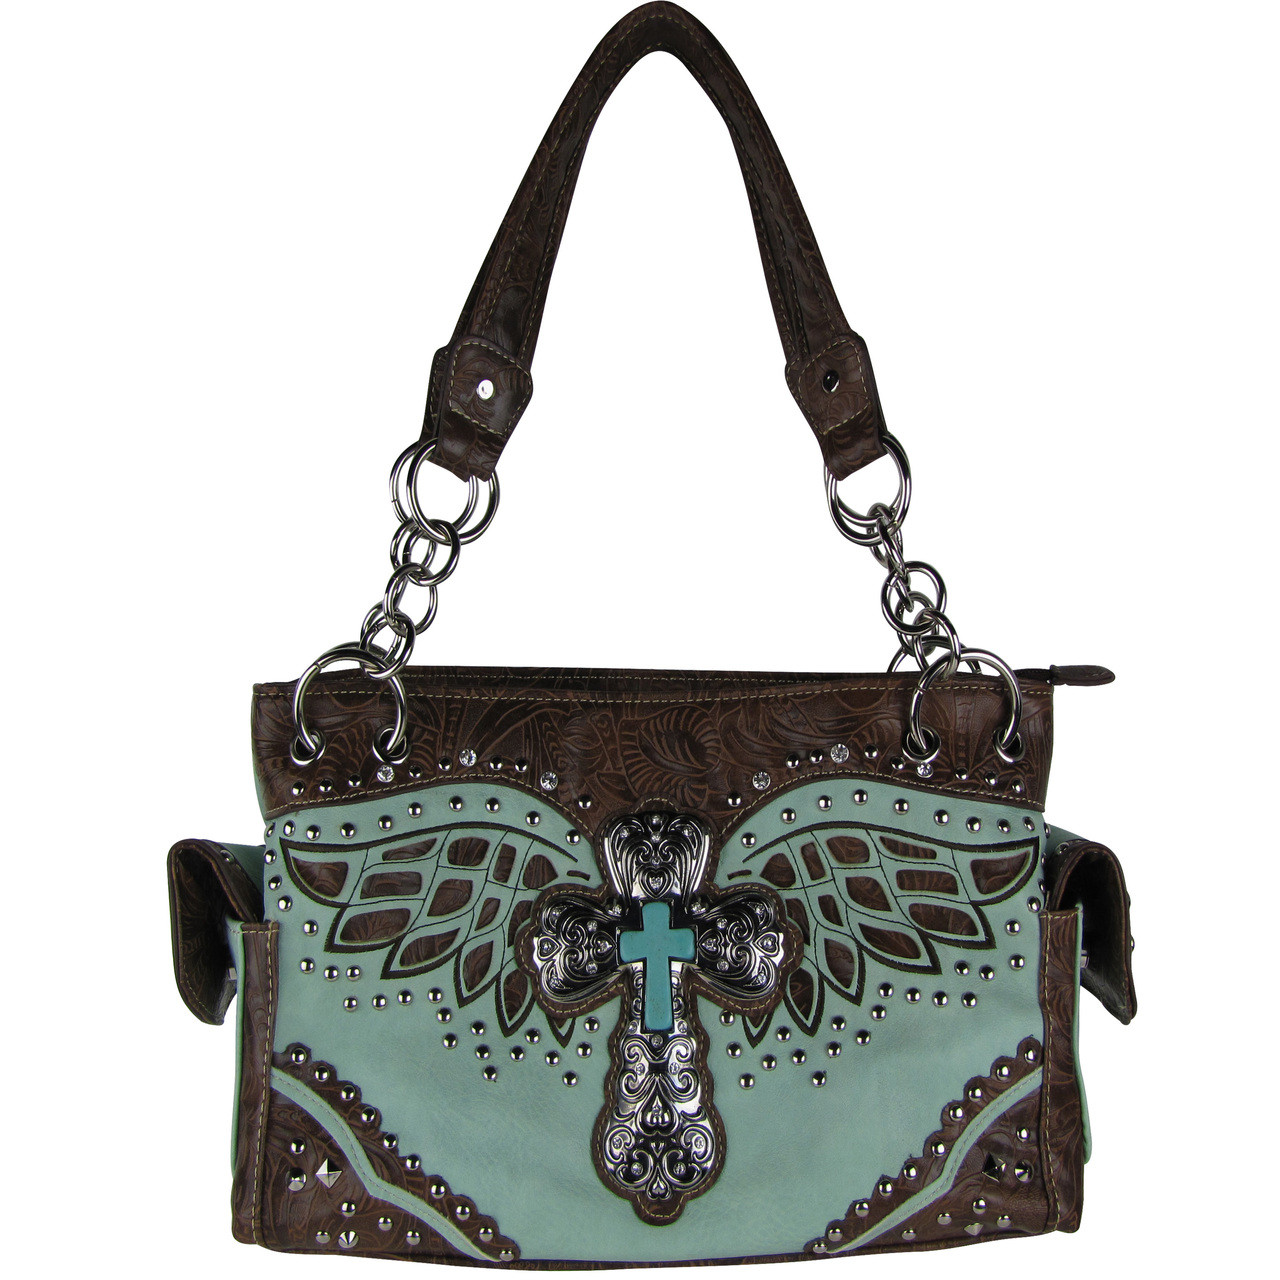 TURQUOISE WESTERN CROSS WITH WINGS LOOK SHOULDER HANDBAG HB1-52LCRTRQ